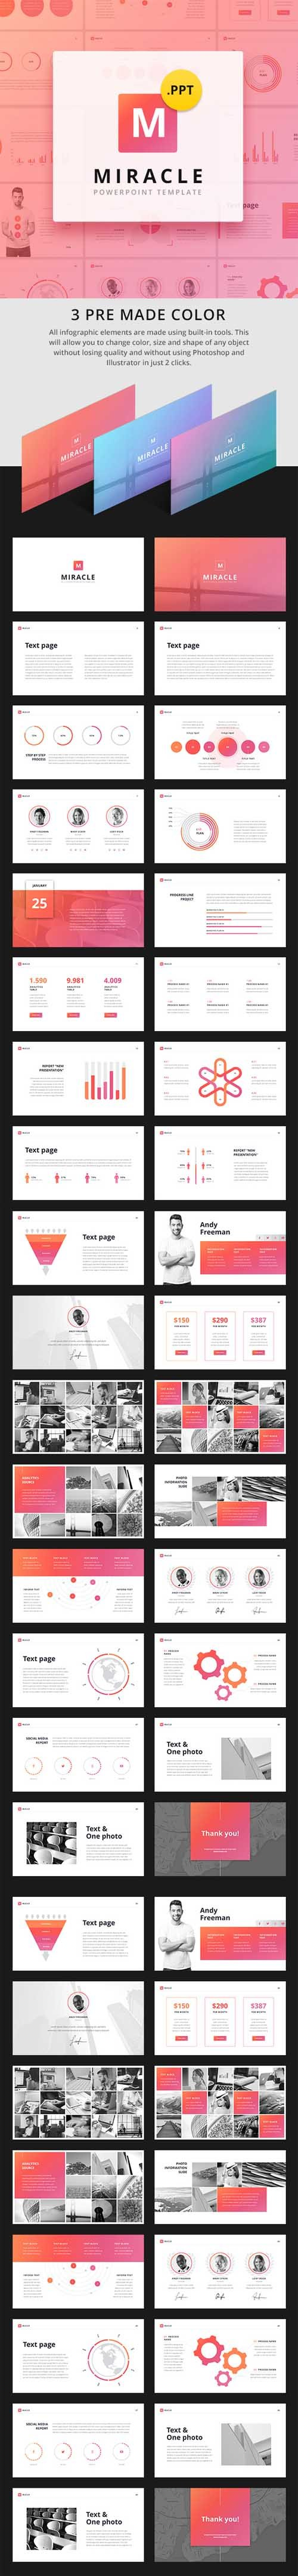 Miracle Modern PowerPoint Template 19683521